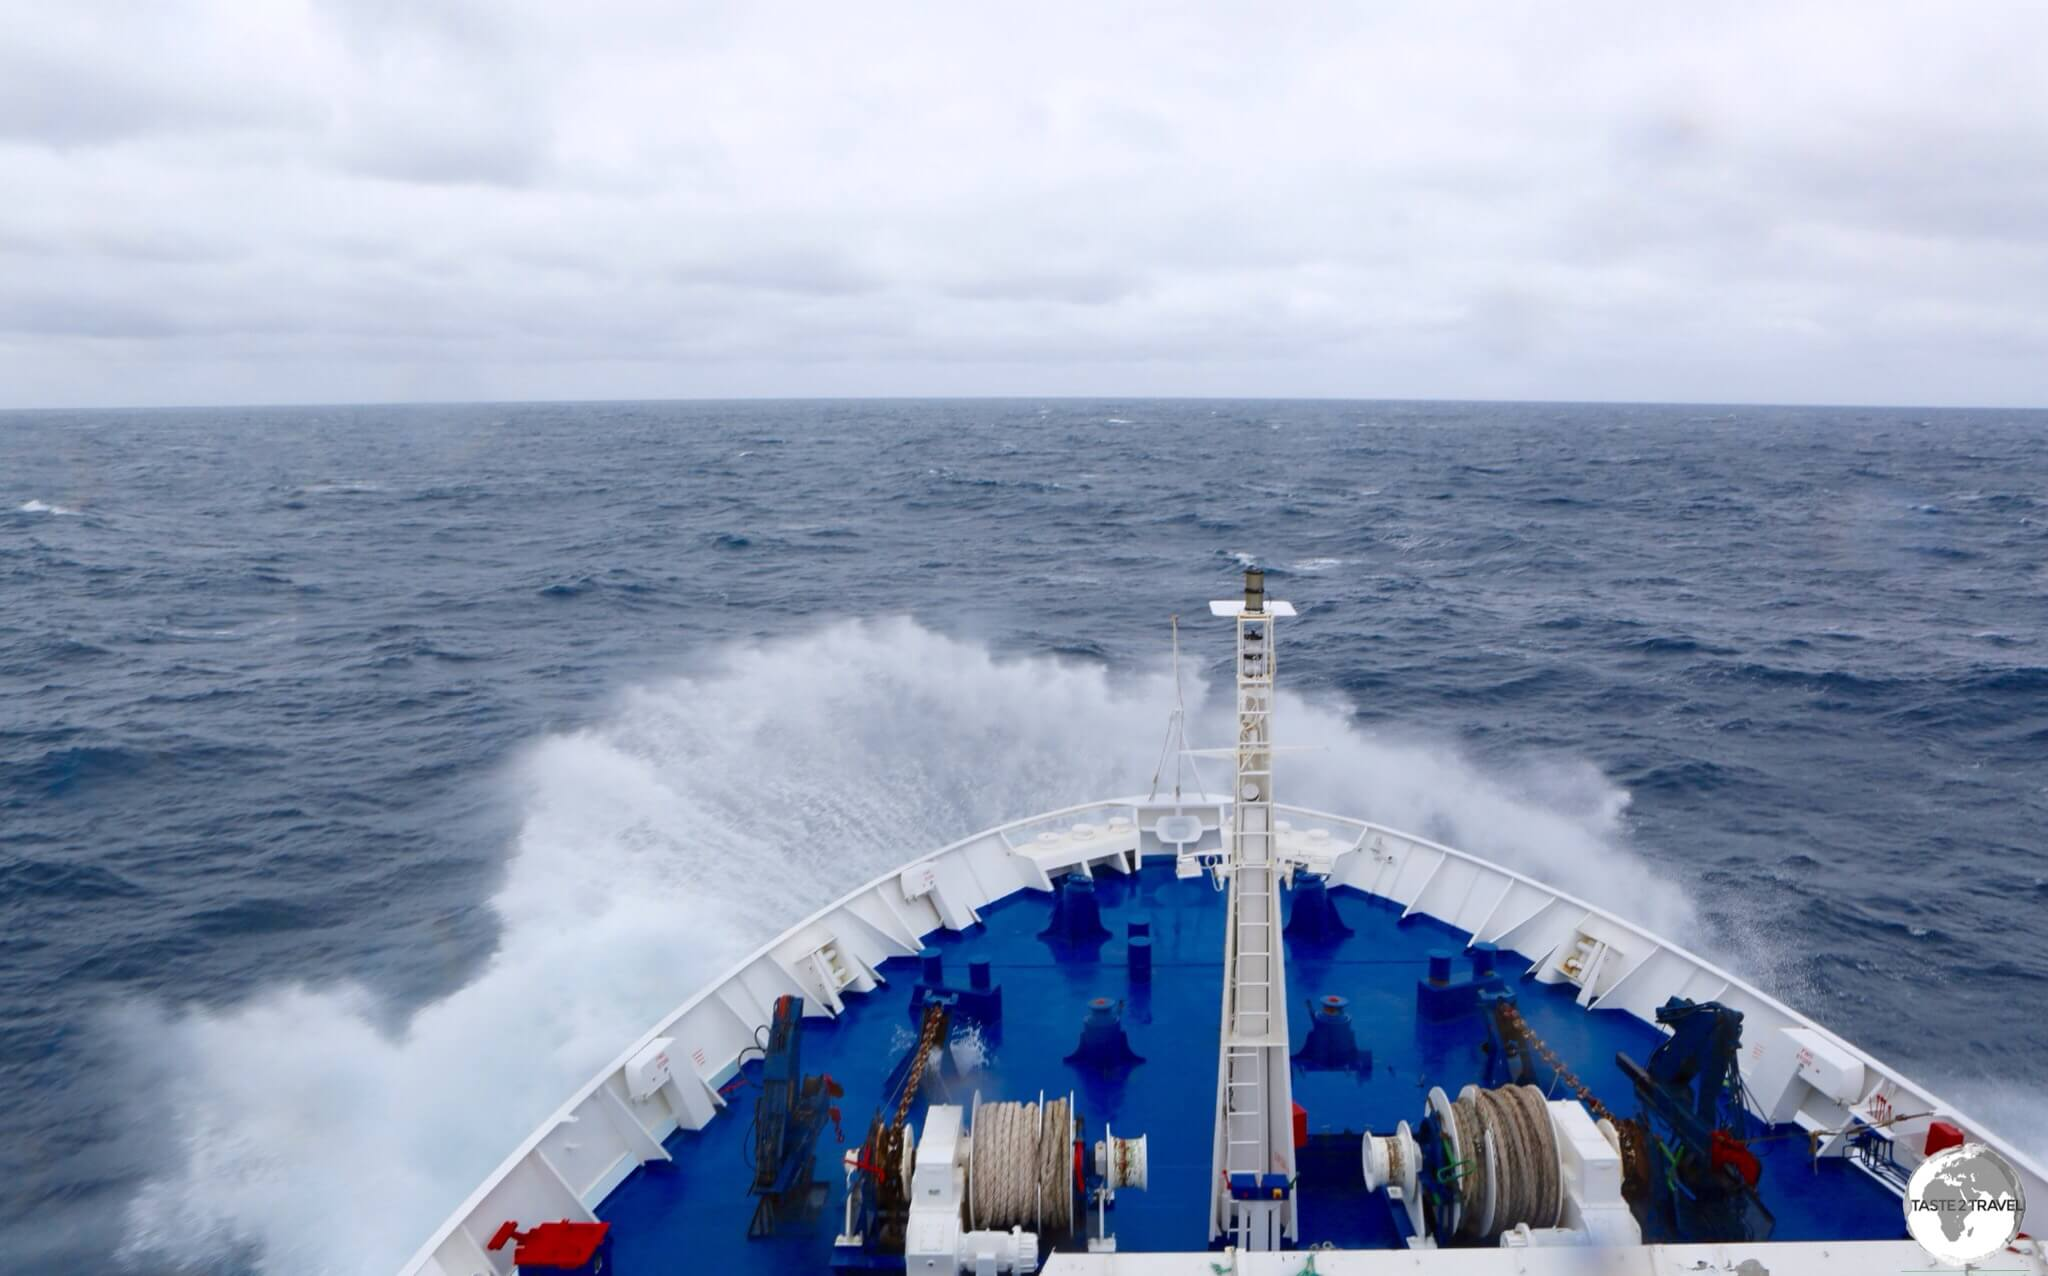 The Drake passage is notorious for rough crossings - our crossing lasted 77 hours.